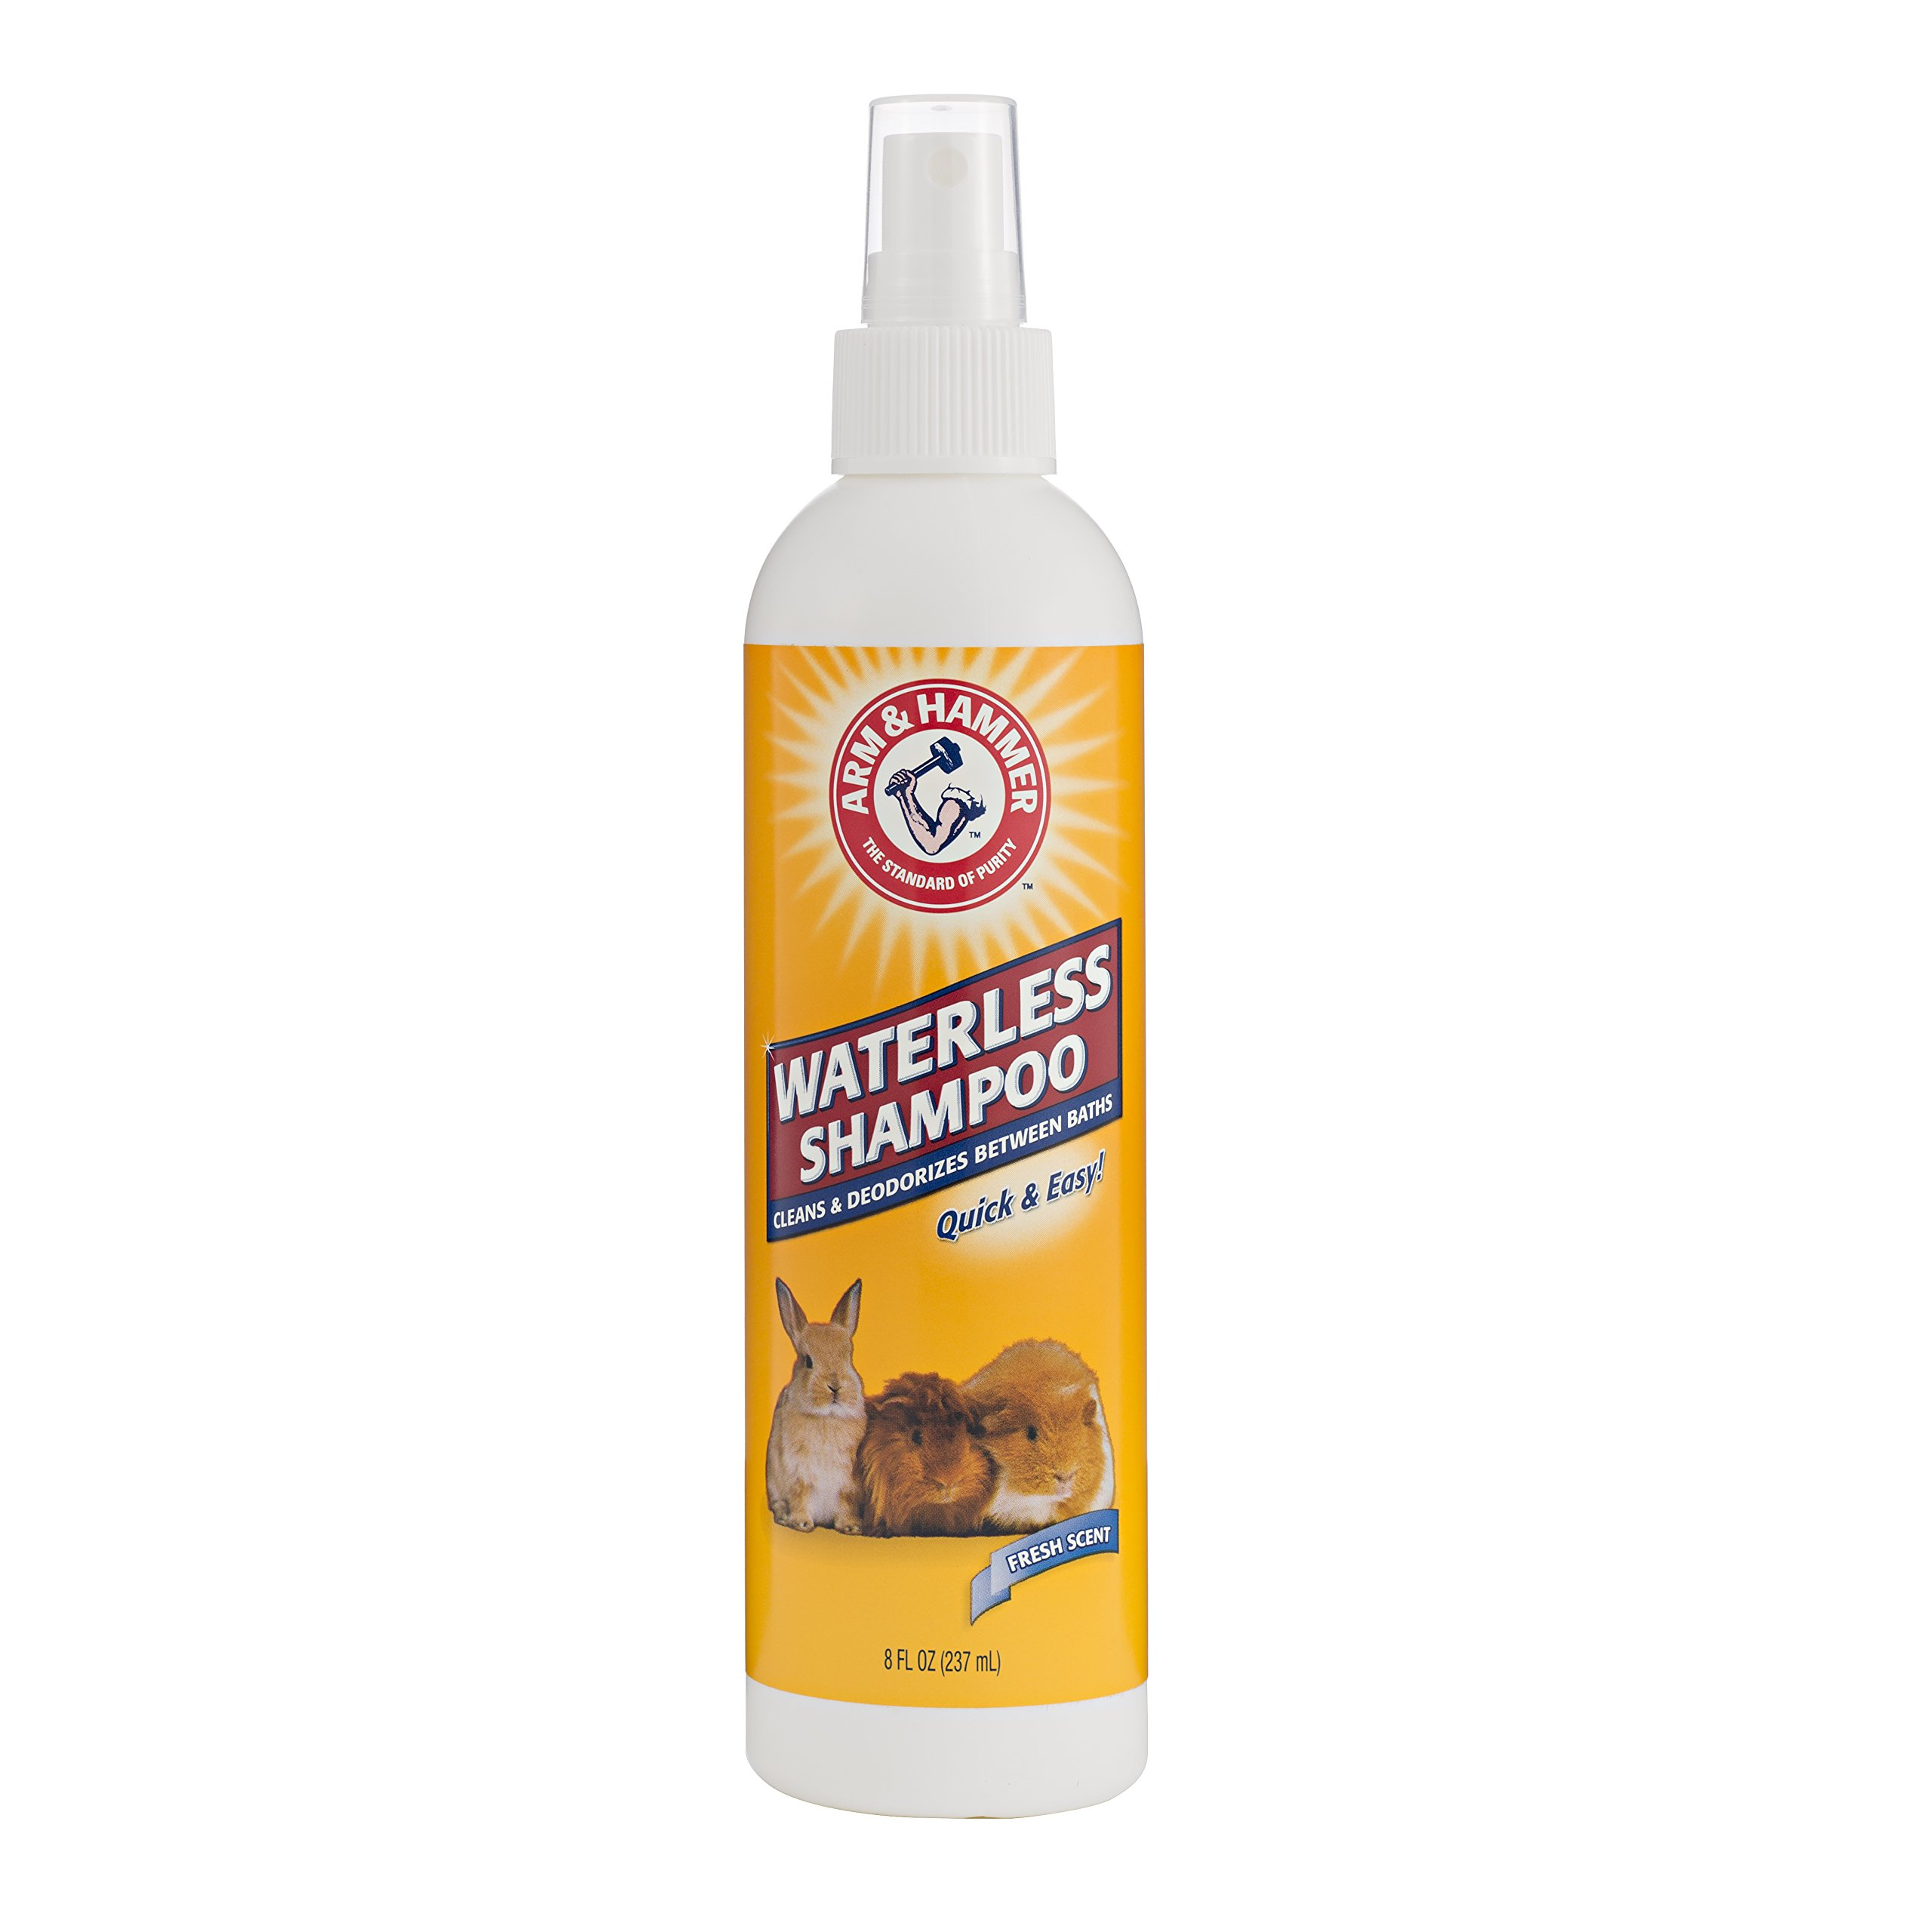 Arm & Hammer Waterless Shampoo for Small Animals | Safe for Use Around Guinea Pigs, Hamsters, Rabbits & All Small Animals, 8 ounces, Fresh Scent